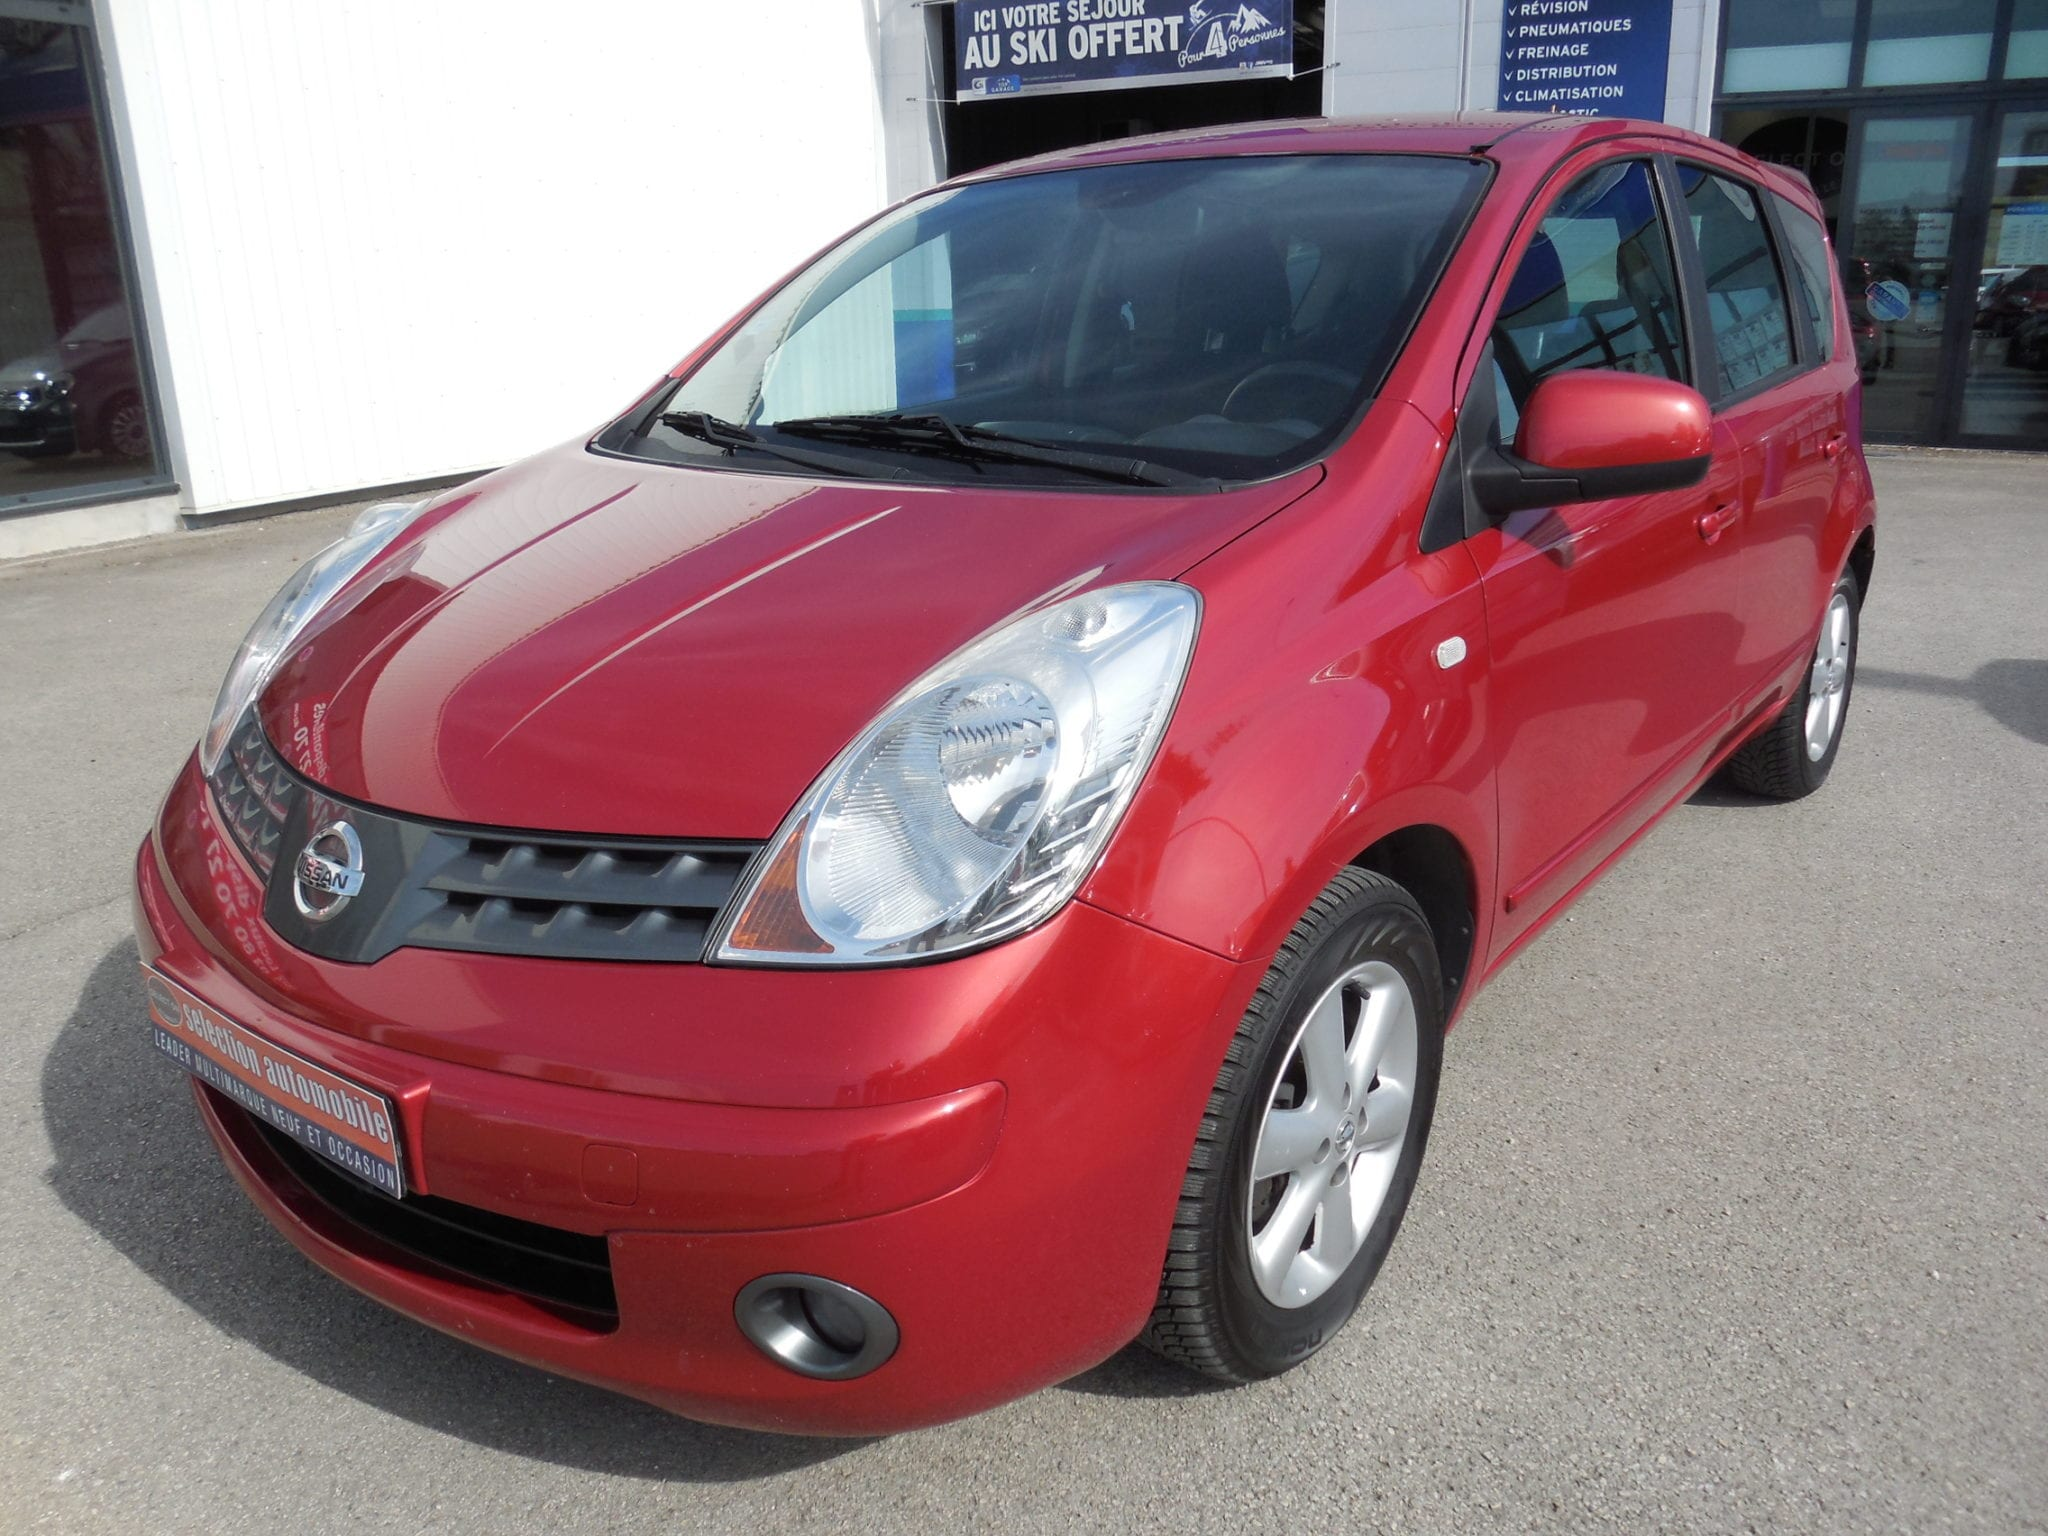 Nissan note 1.5 dci 86 - Image 1